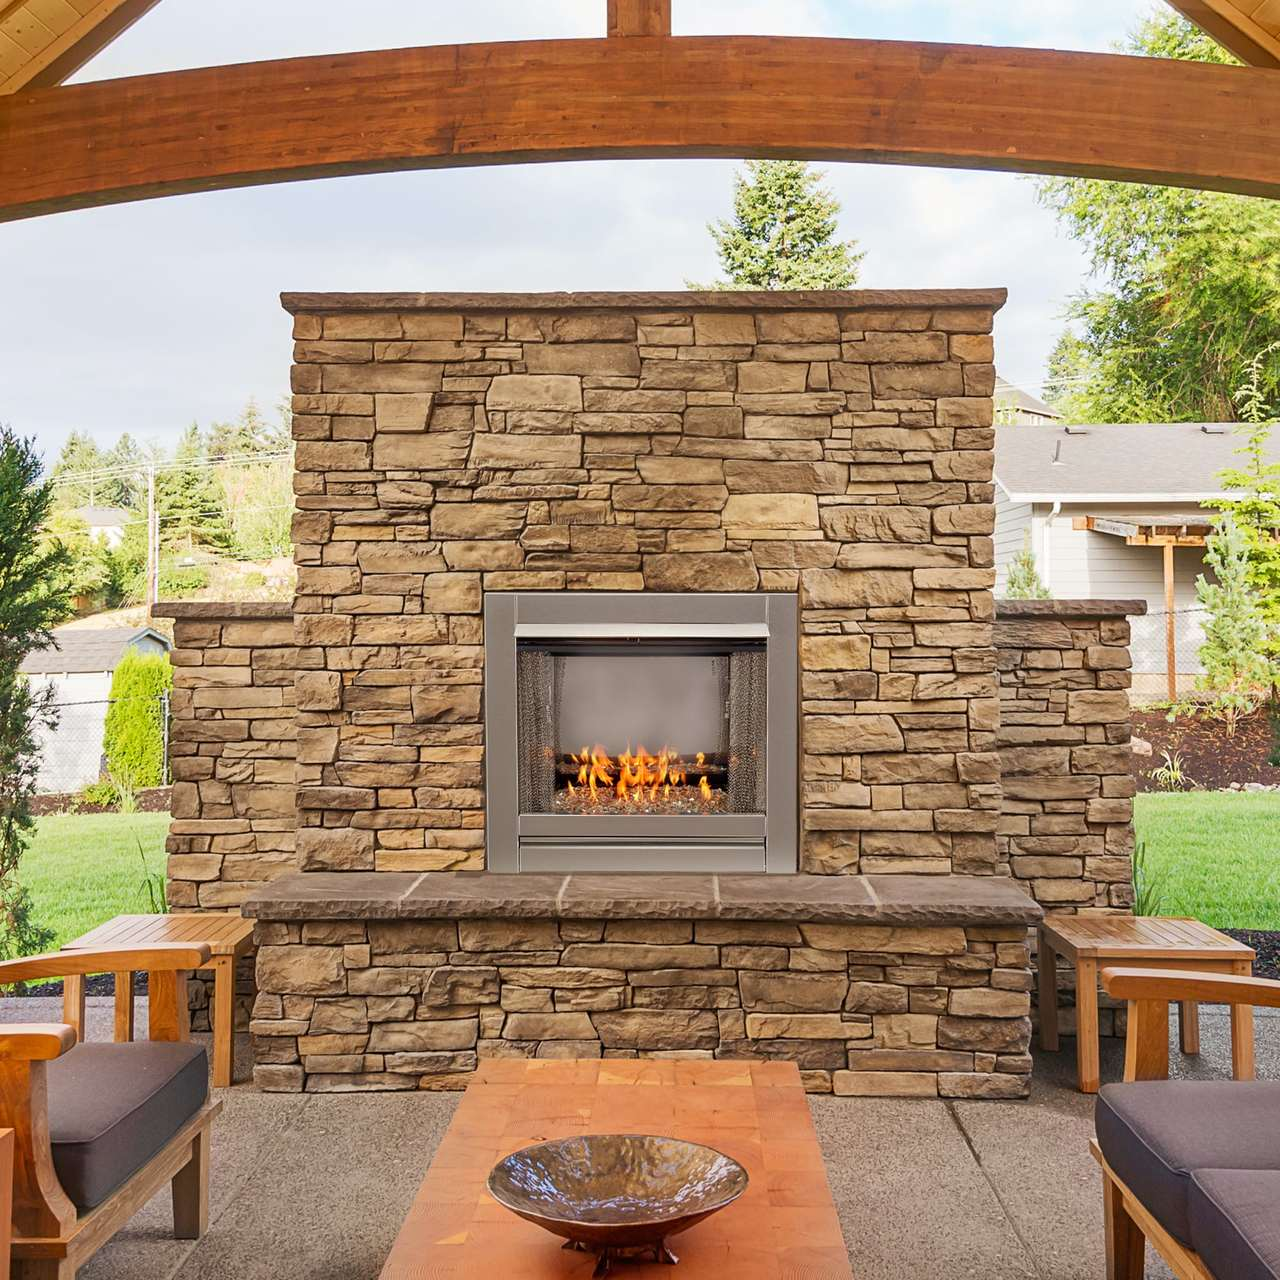 Duluth Forge Vent Free Stainless Outdoor Gas Fireplace ...